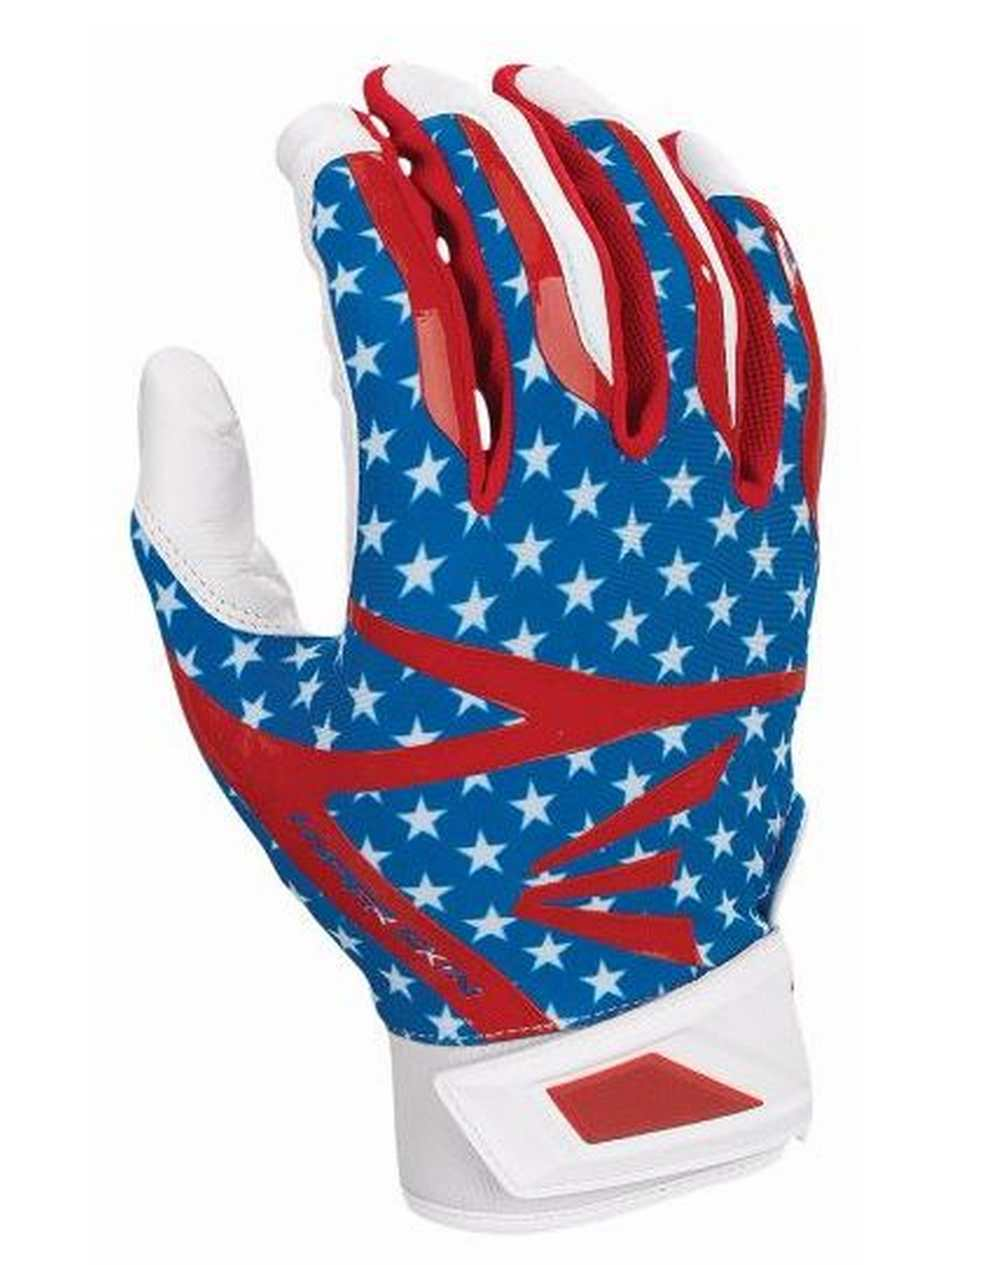 Easton baseball batting gloves